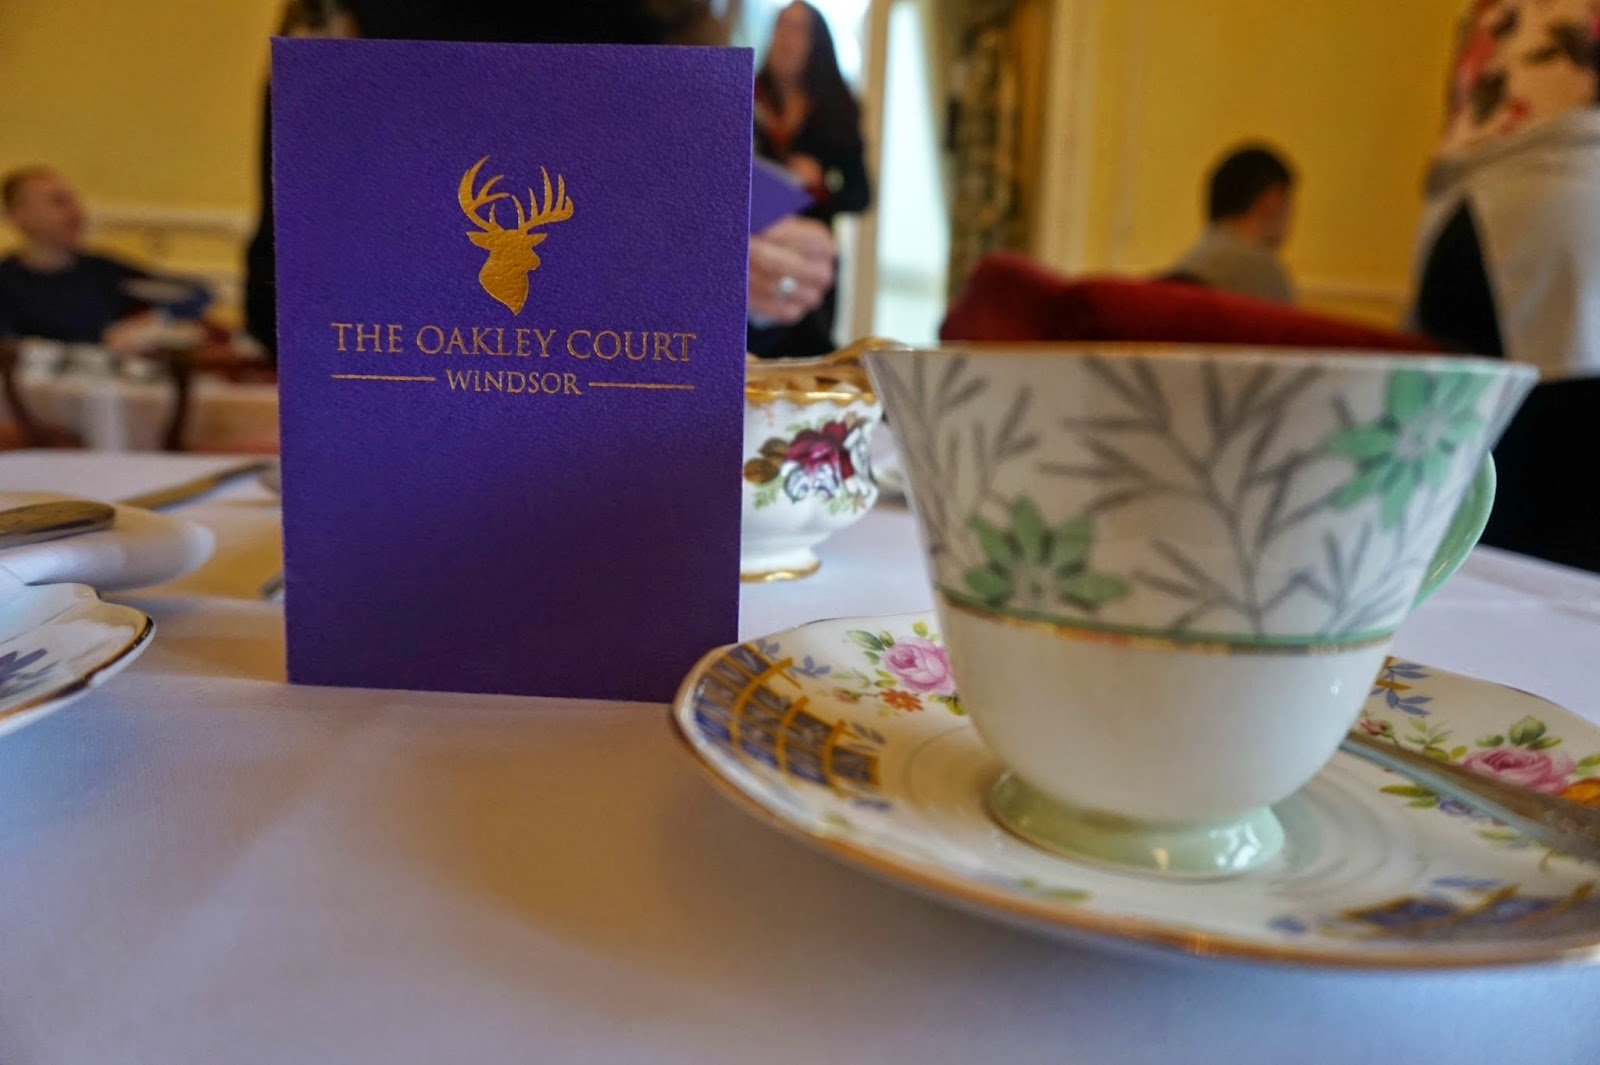 Oakley Court Windsor Afternoon Tea